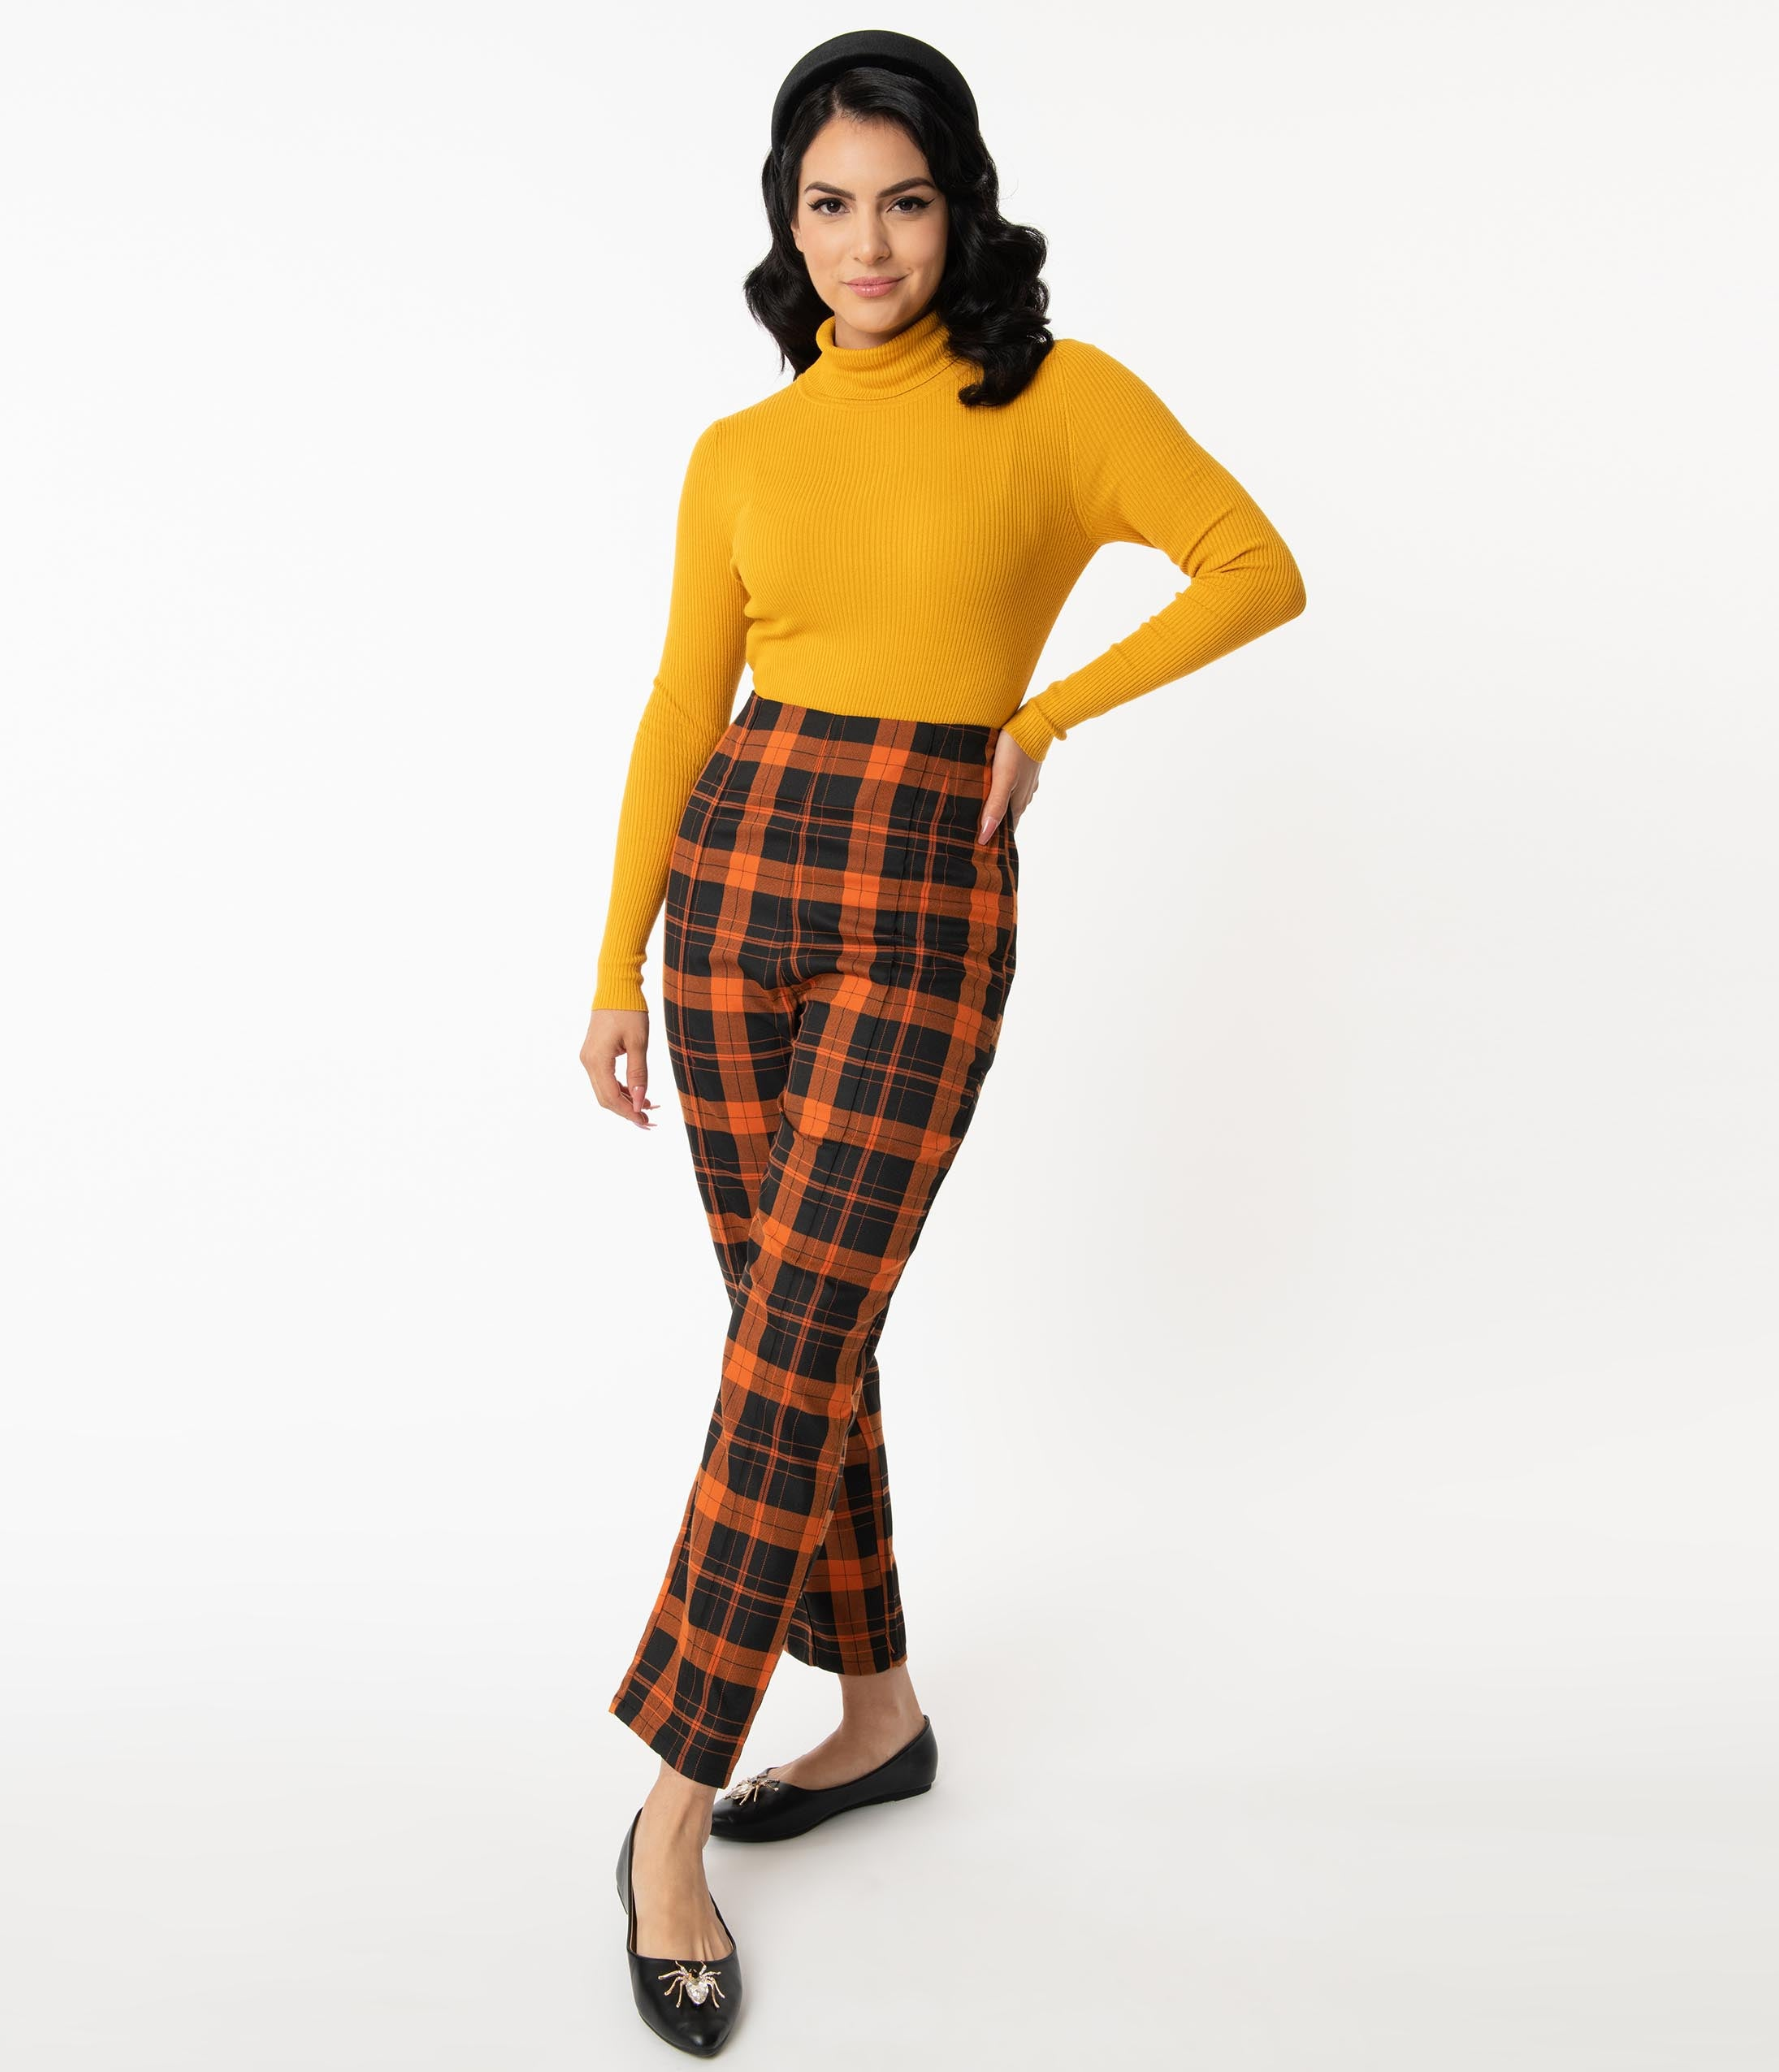 1950s Style Clothing & Fashion Collectif Orange  Black Pumpkin Plaid Bonnie Pants $58.00 AT vintagedancer.com